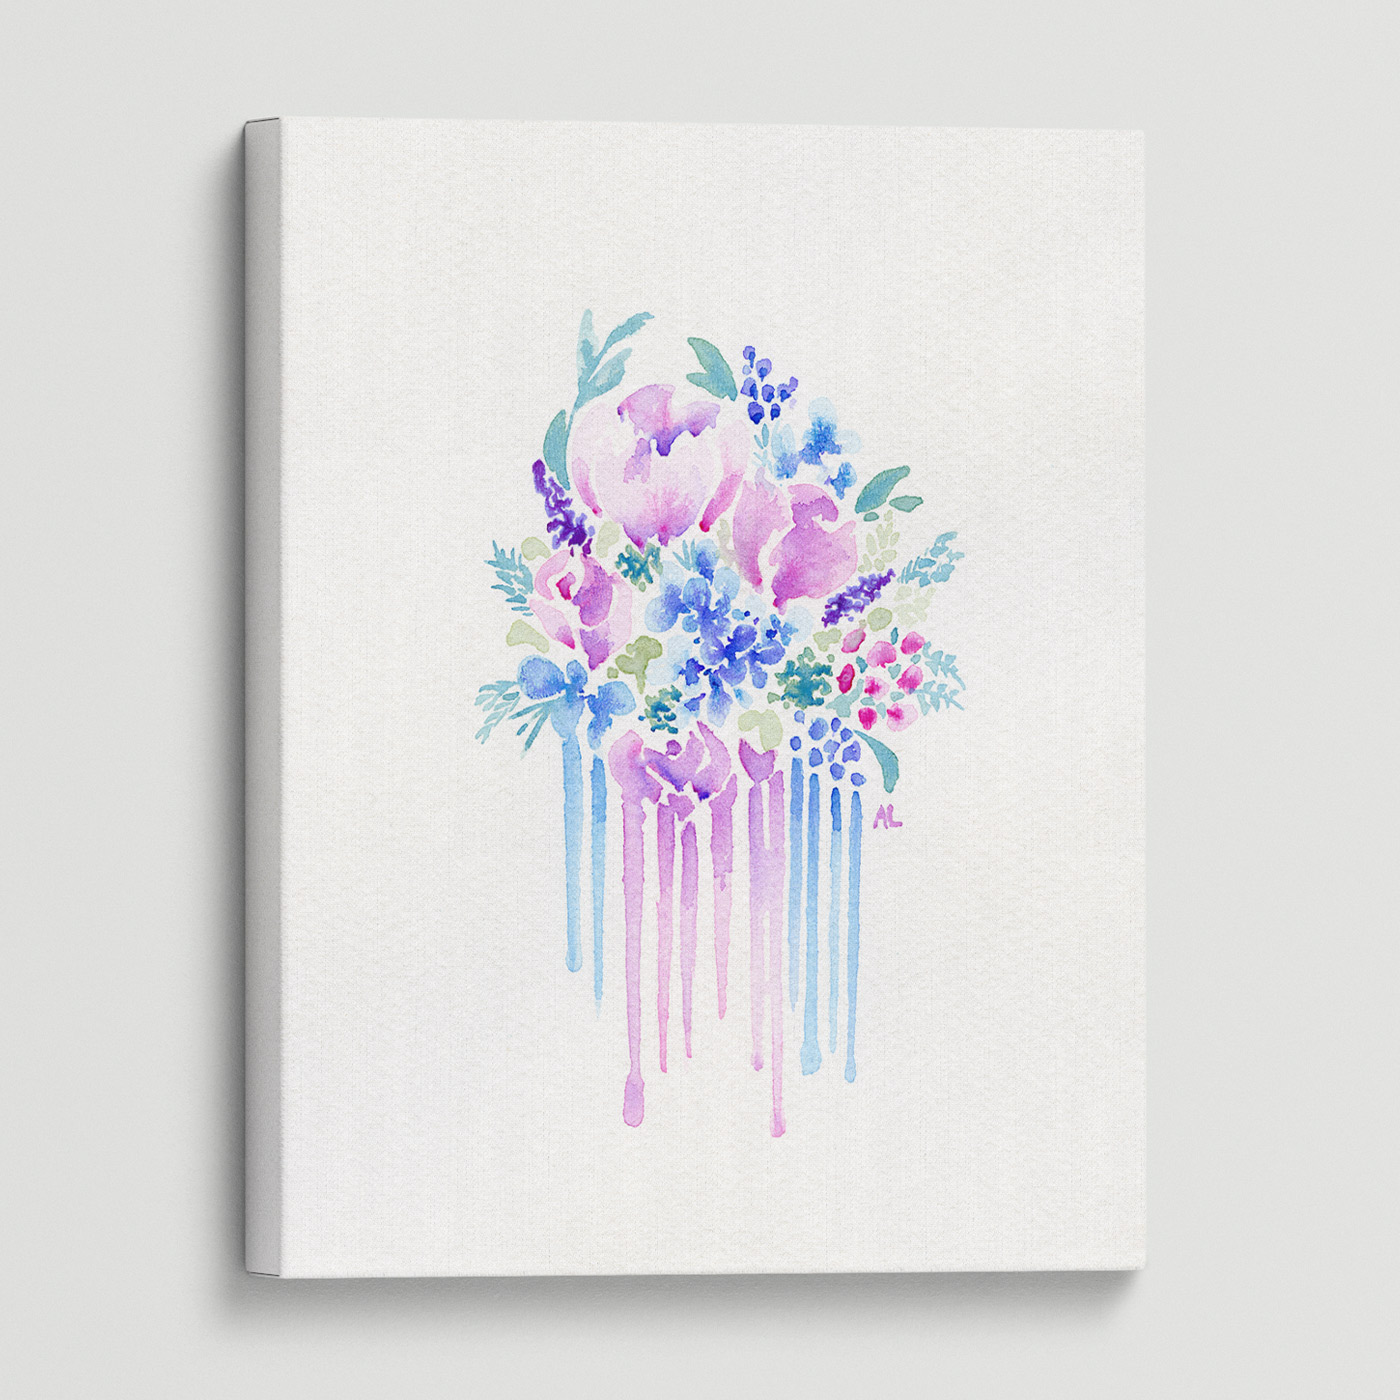 Water-colour print with gentle colours gives an ethereal feel to this floral artwork.